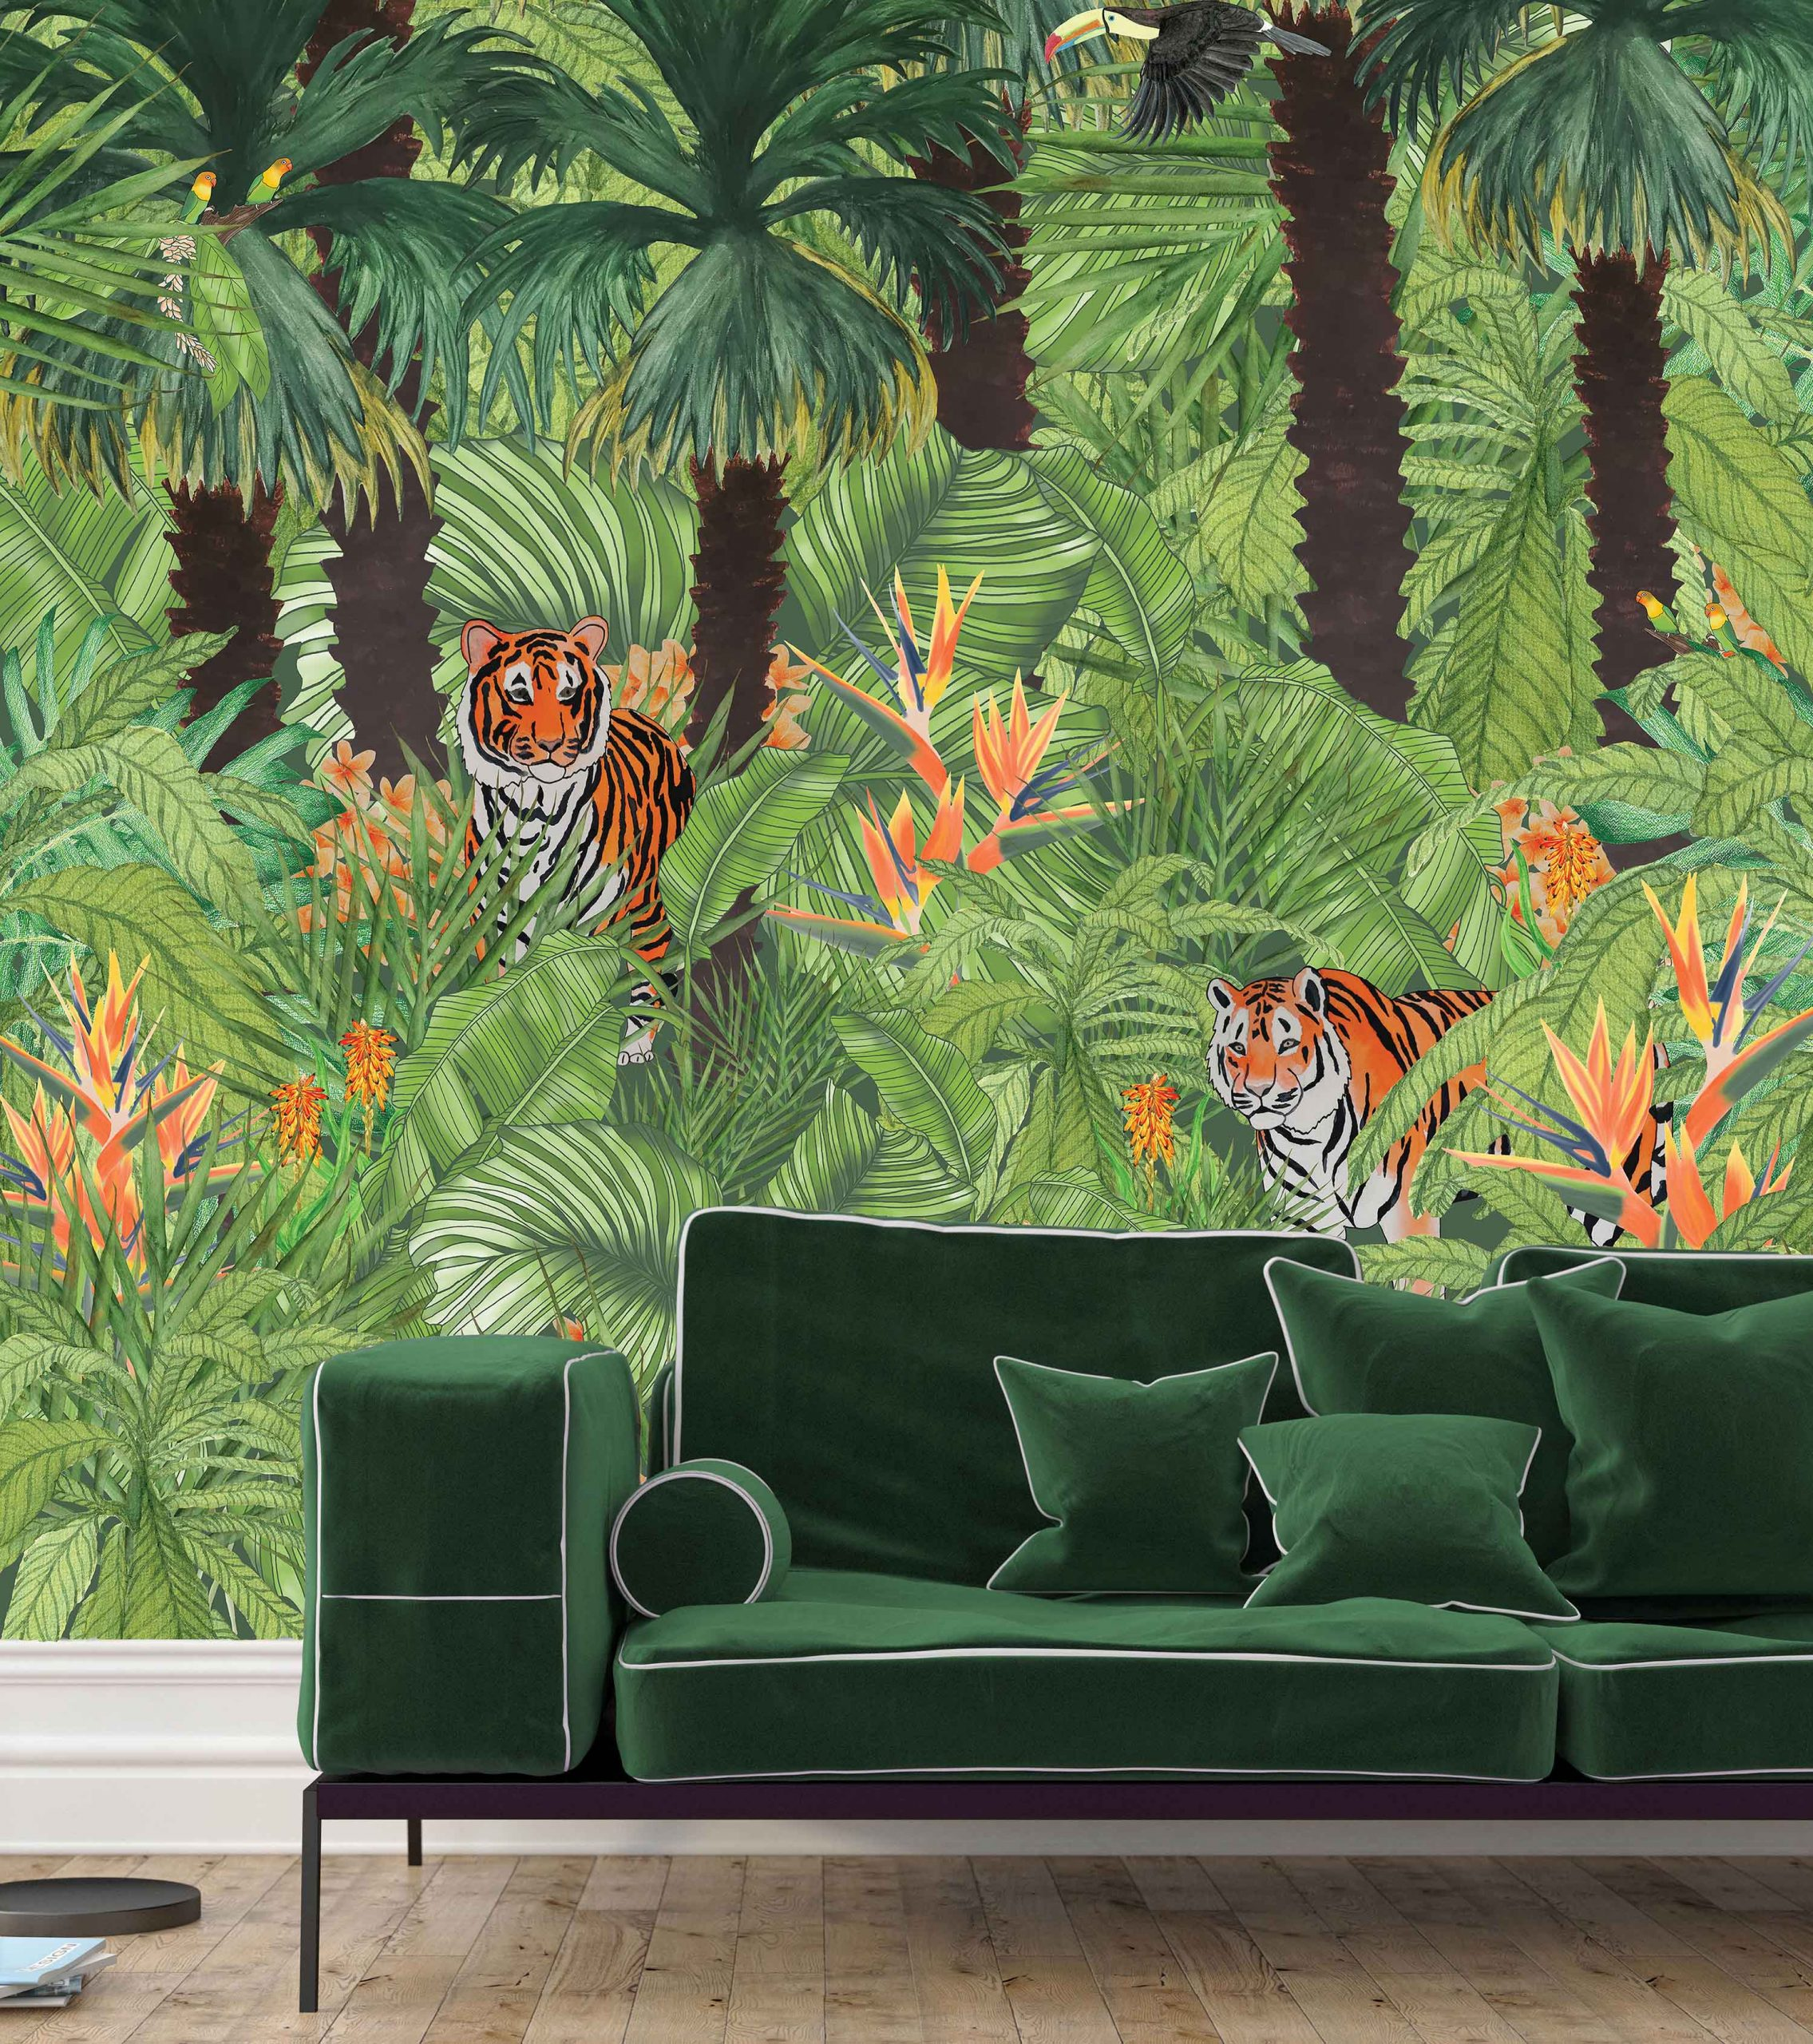 Tigers On The Lookout wall mural